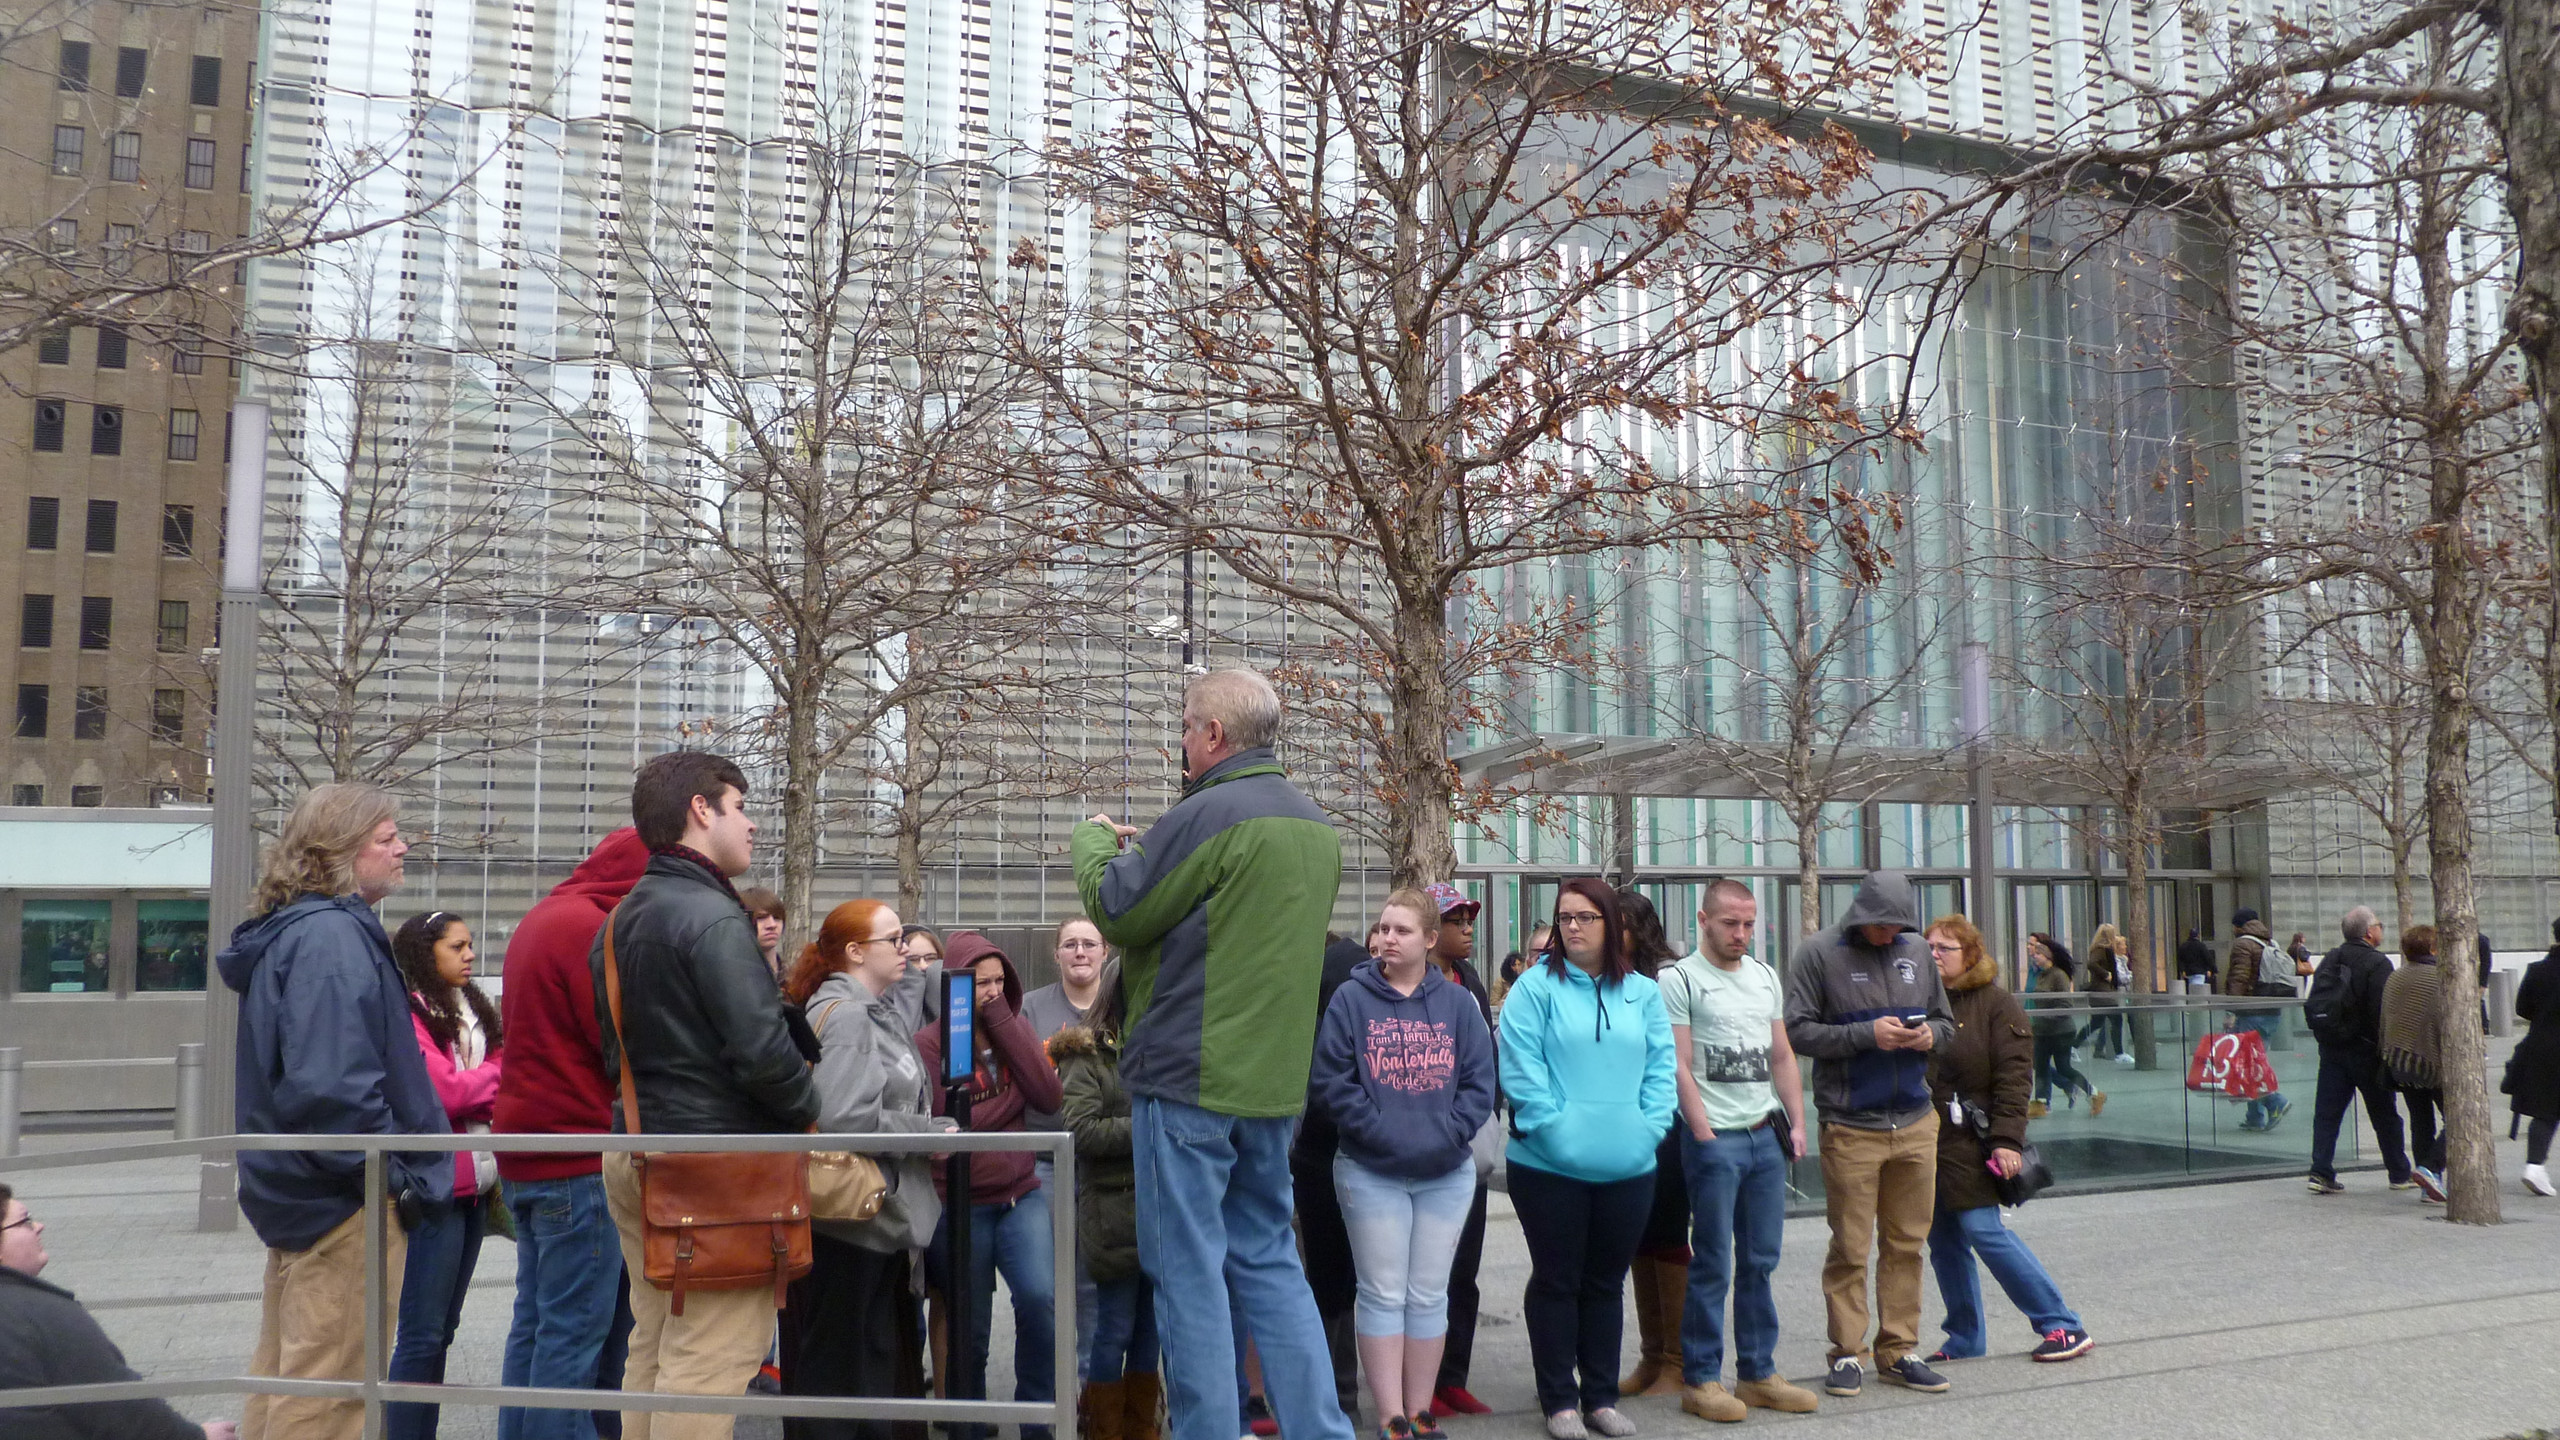 Our group in front of One World Trade Center listening to the tour guide